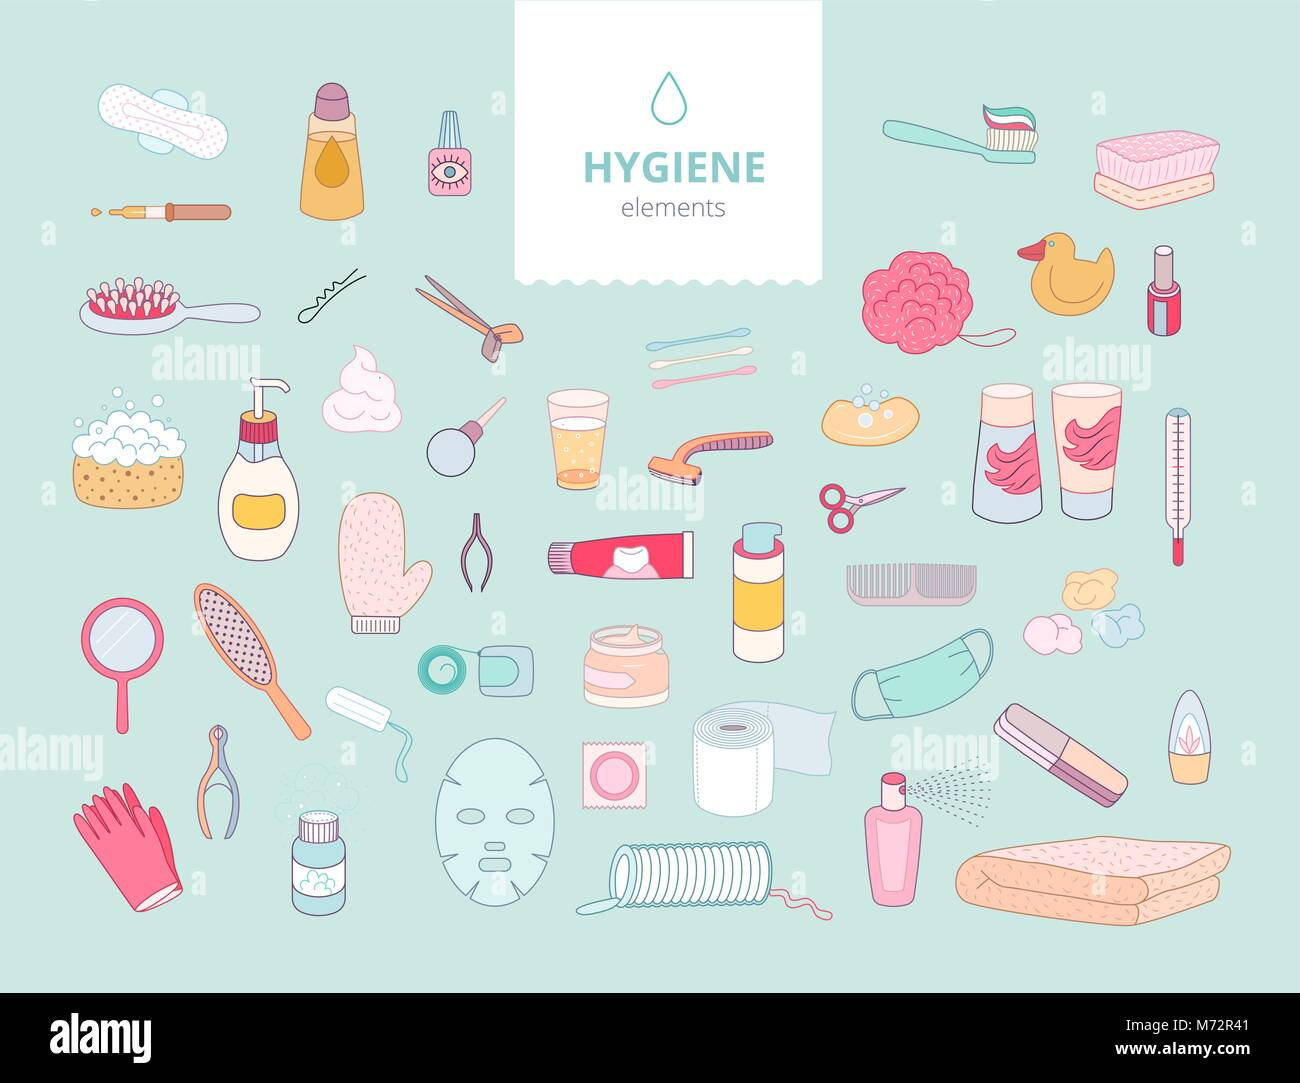 The set of hygiene elements on green background, flat cartoon vector illustration - Stock Vector